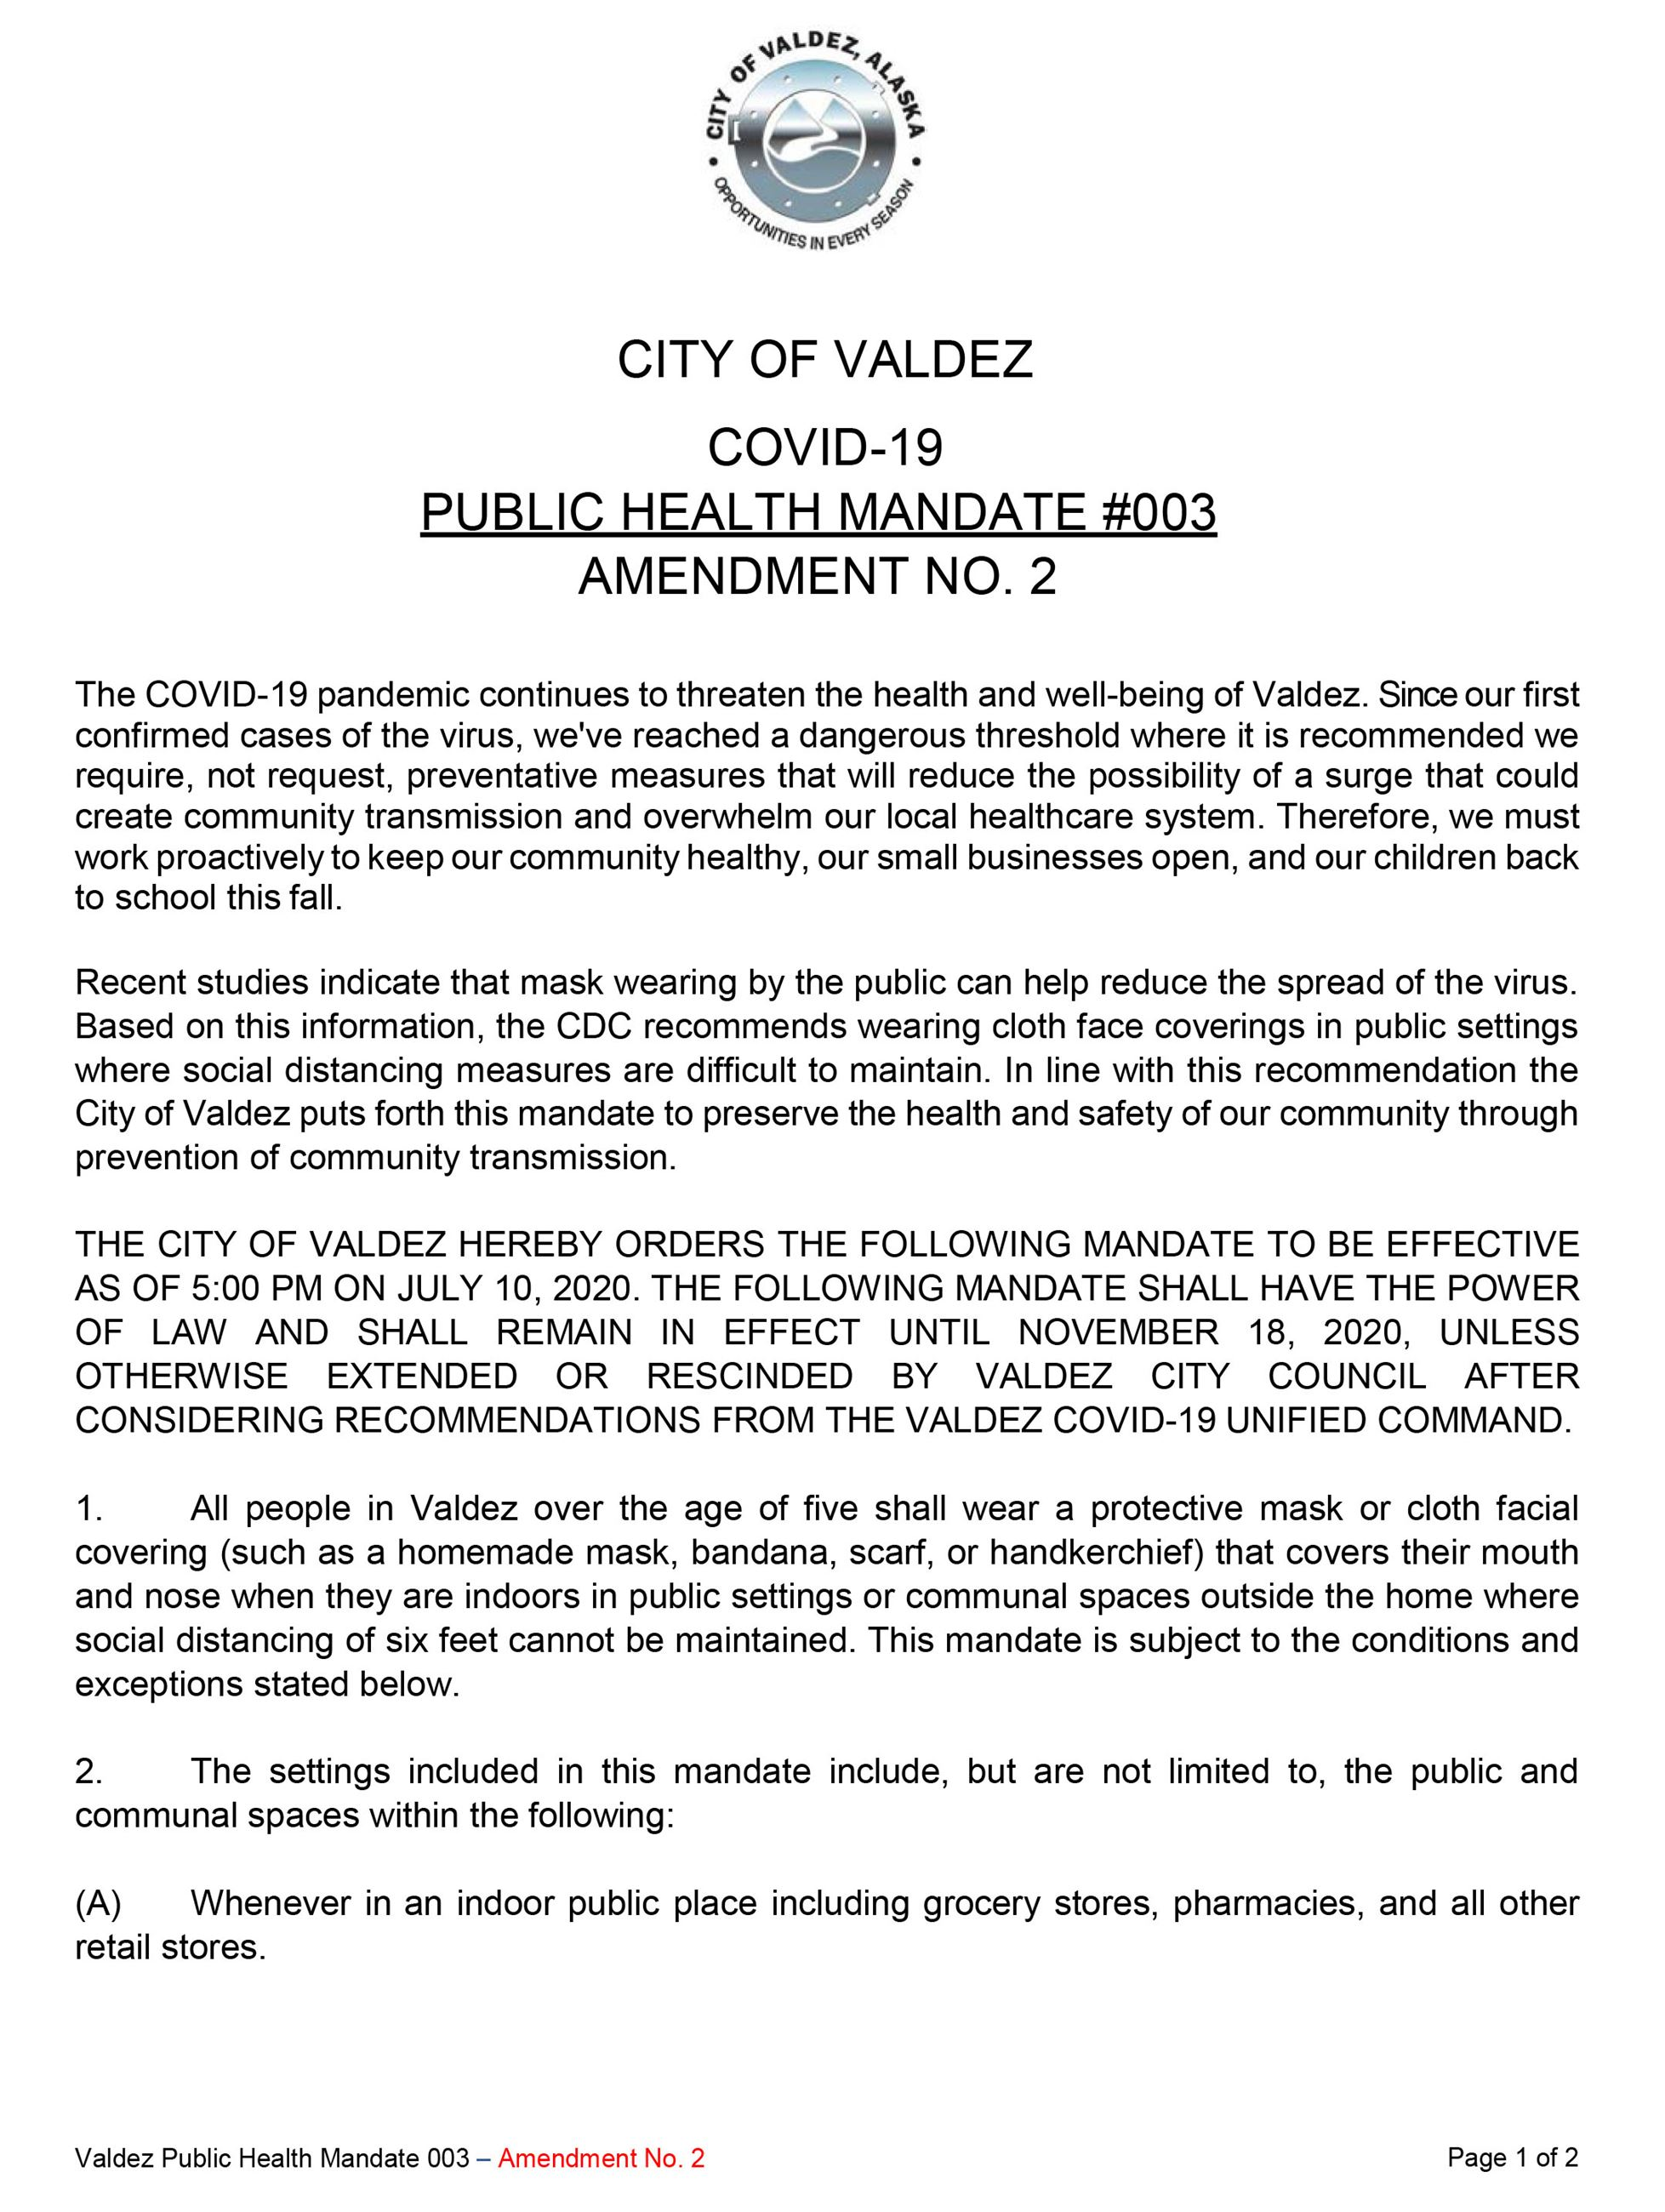 Amendment 002 to Public Health Mandate 003 Requiring Masks-1